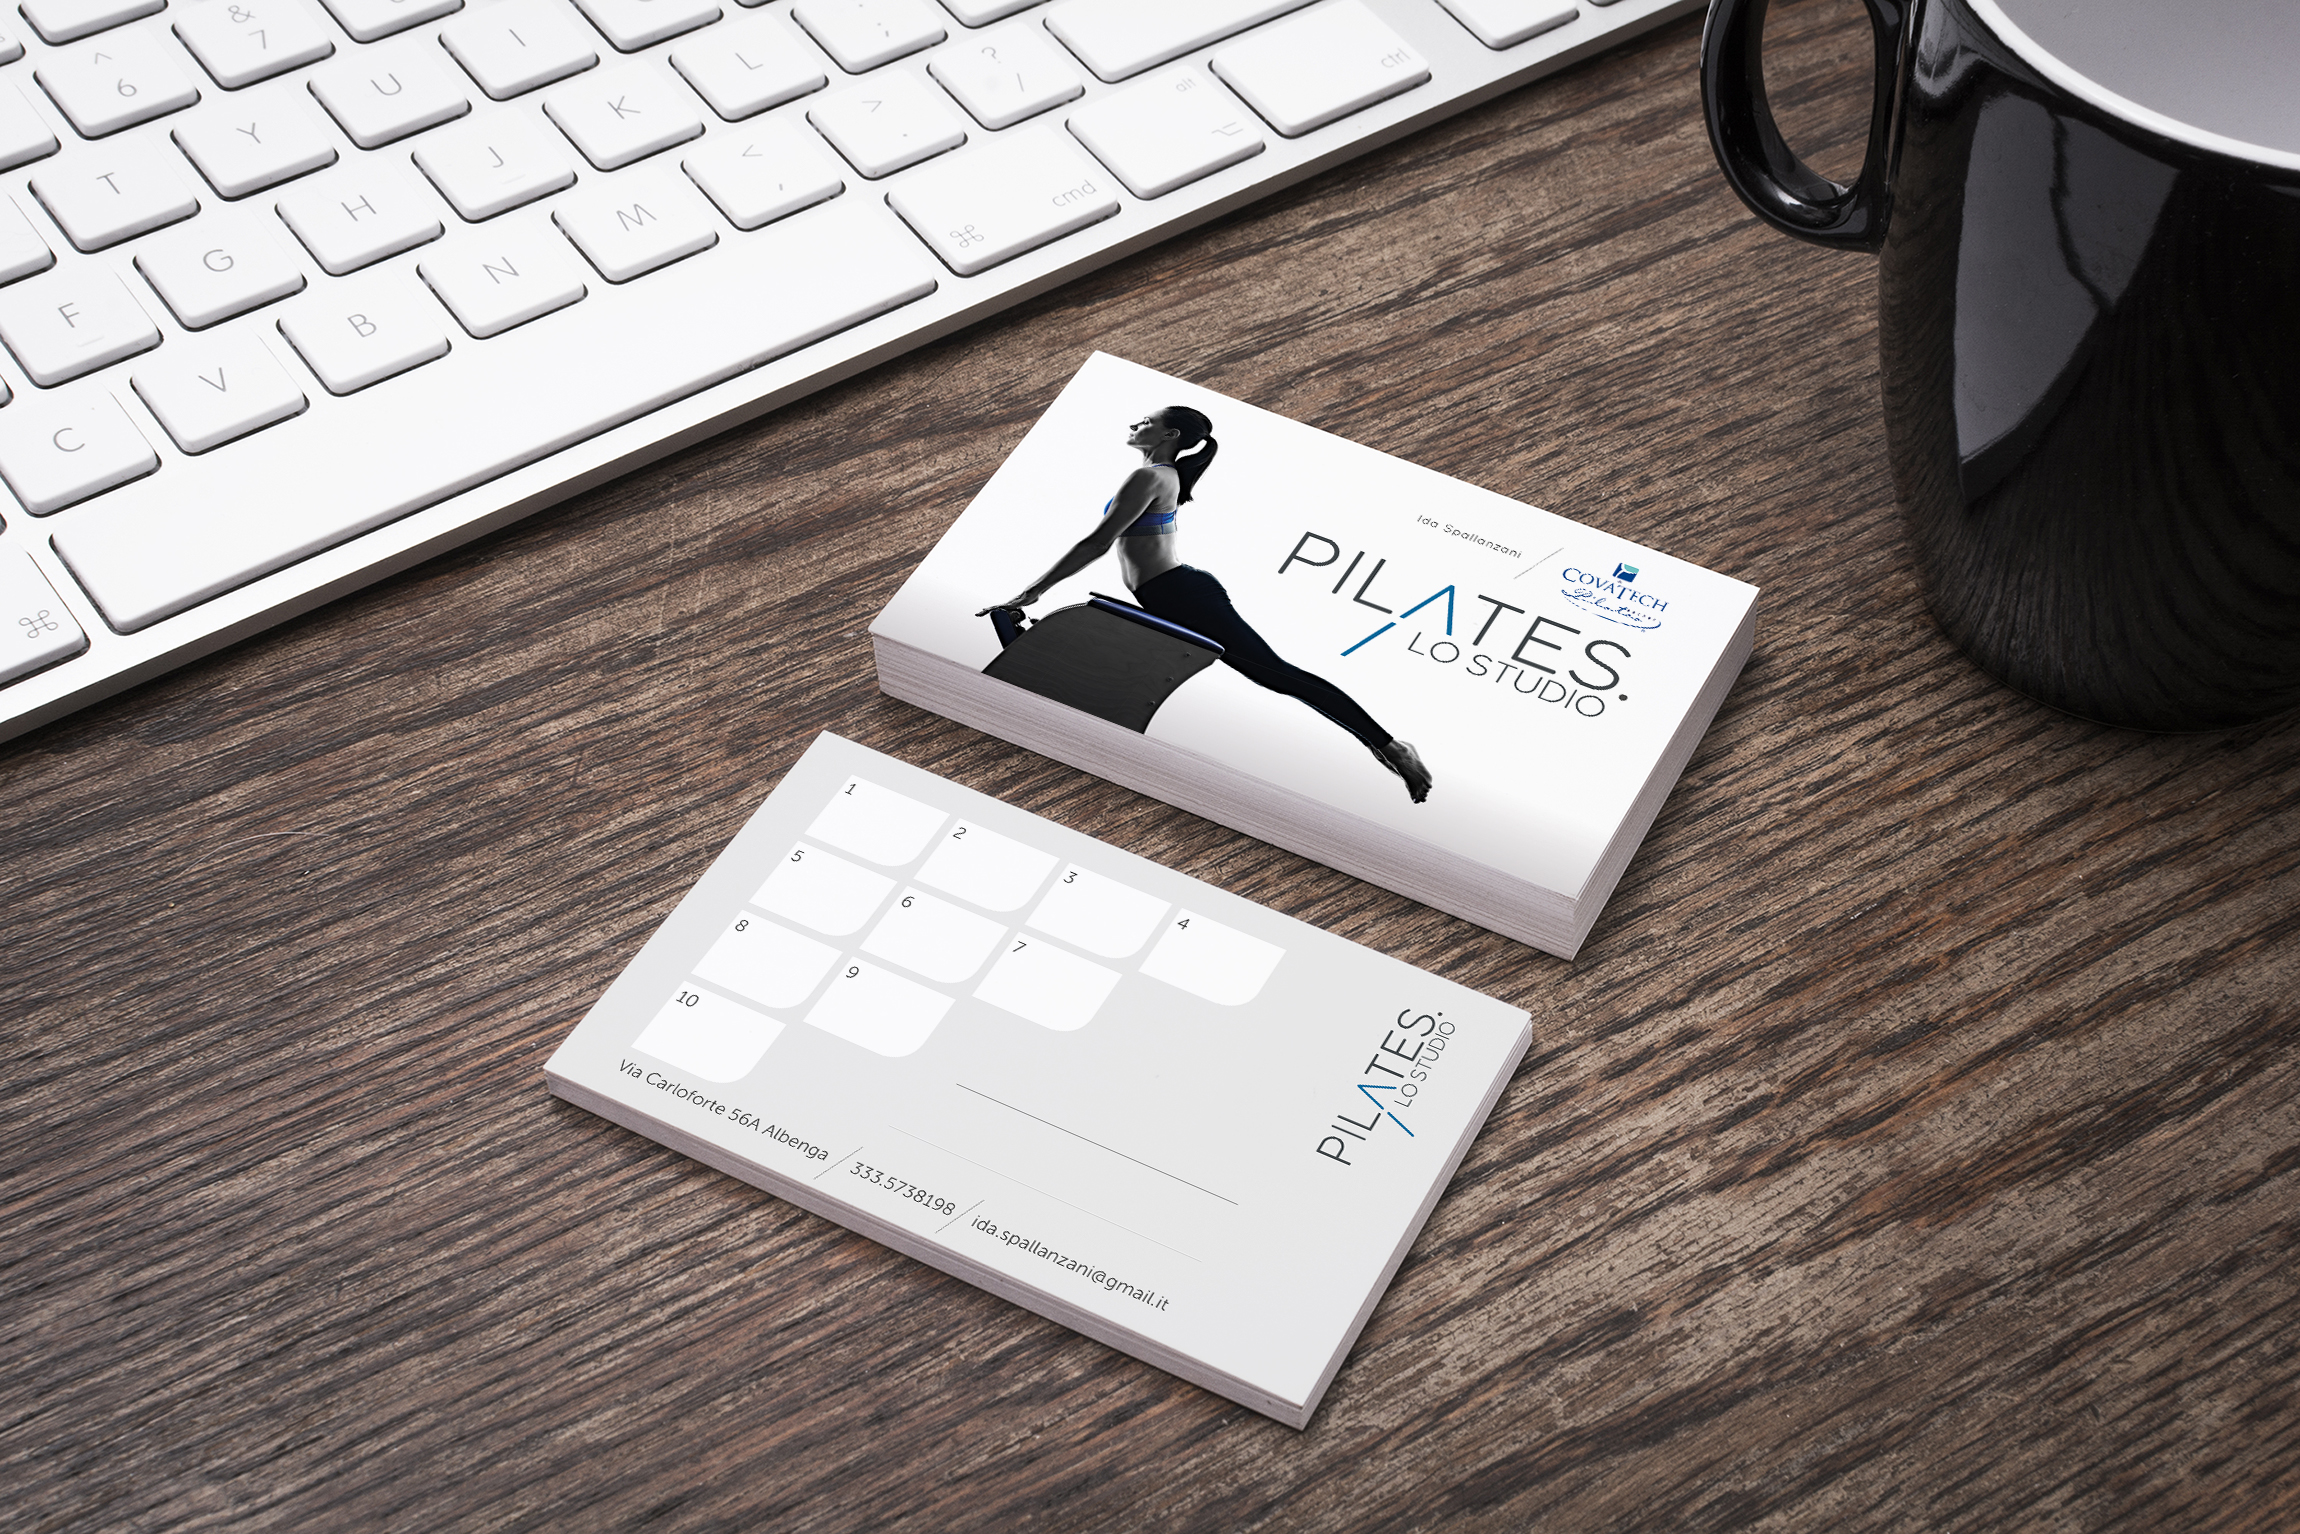 piltaes card Free Designer Business Card Mockup